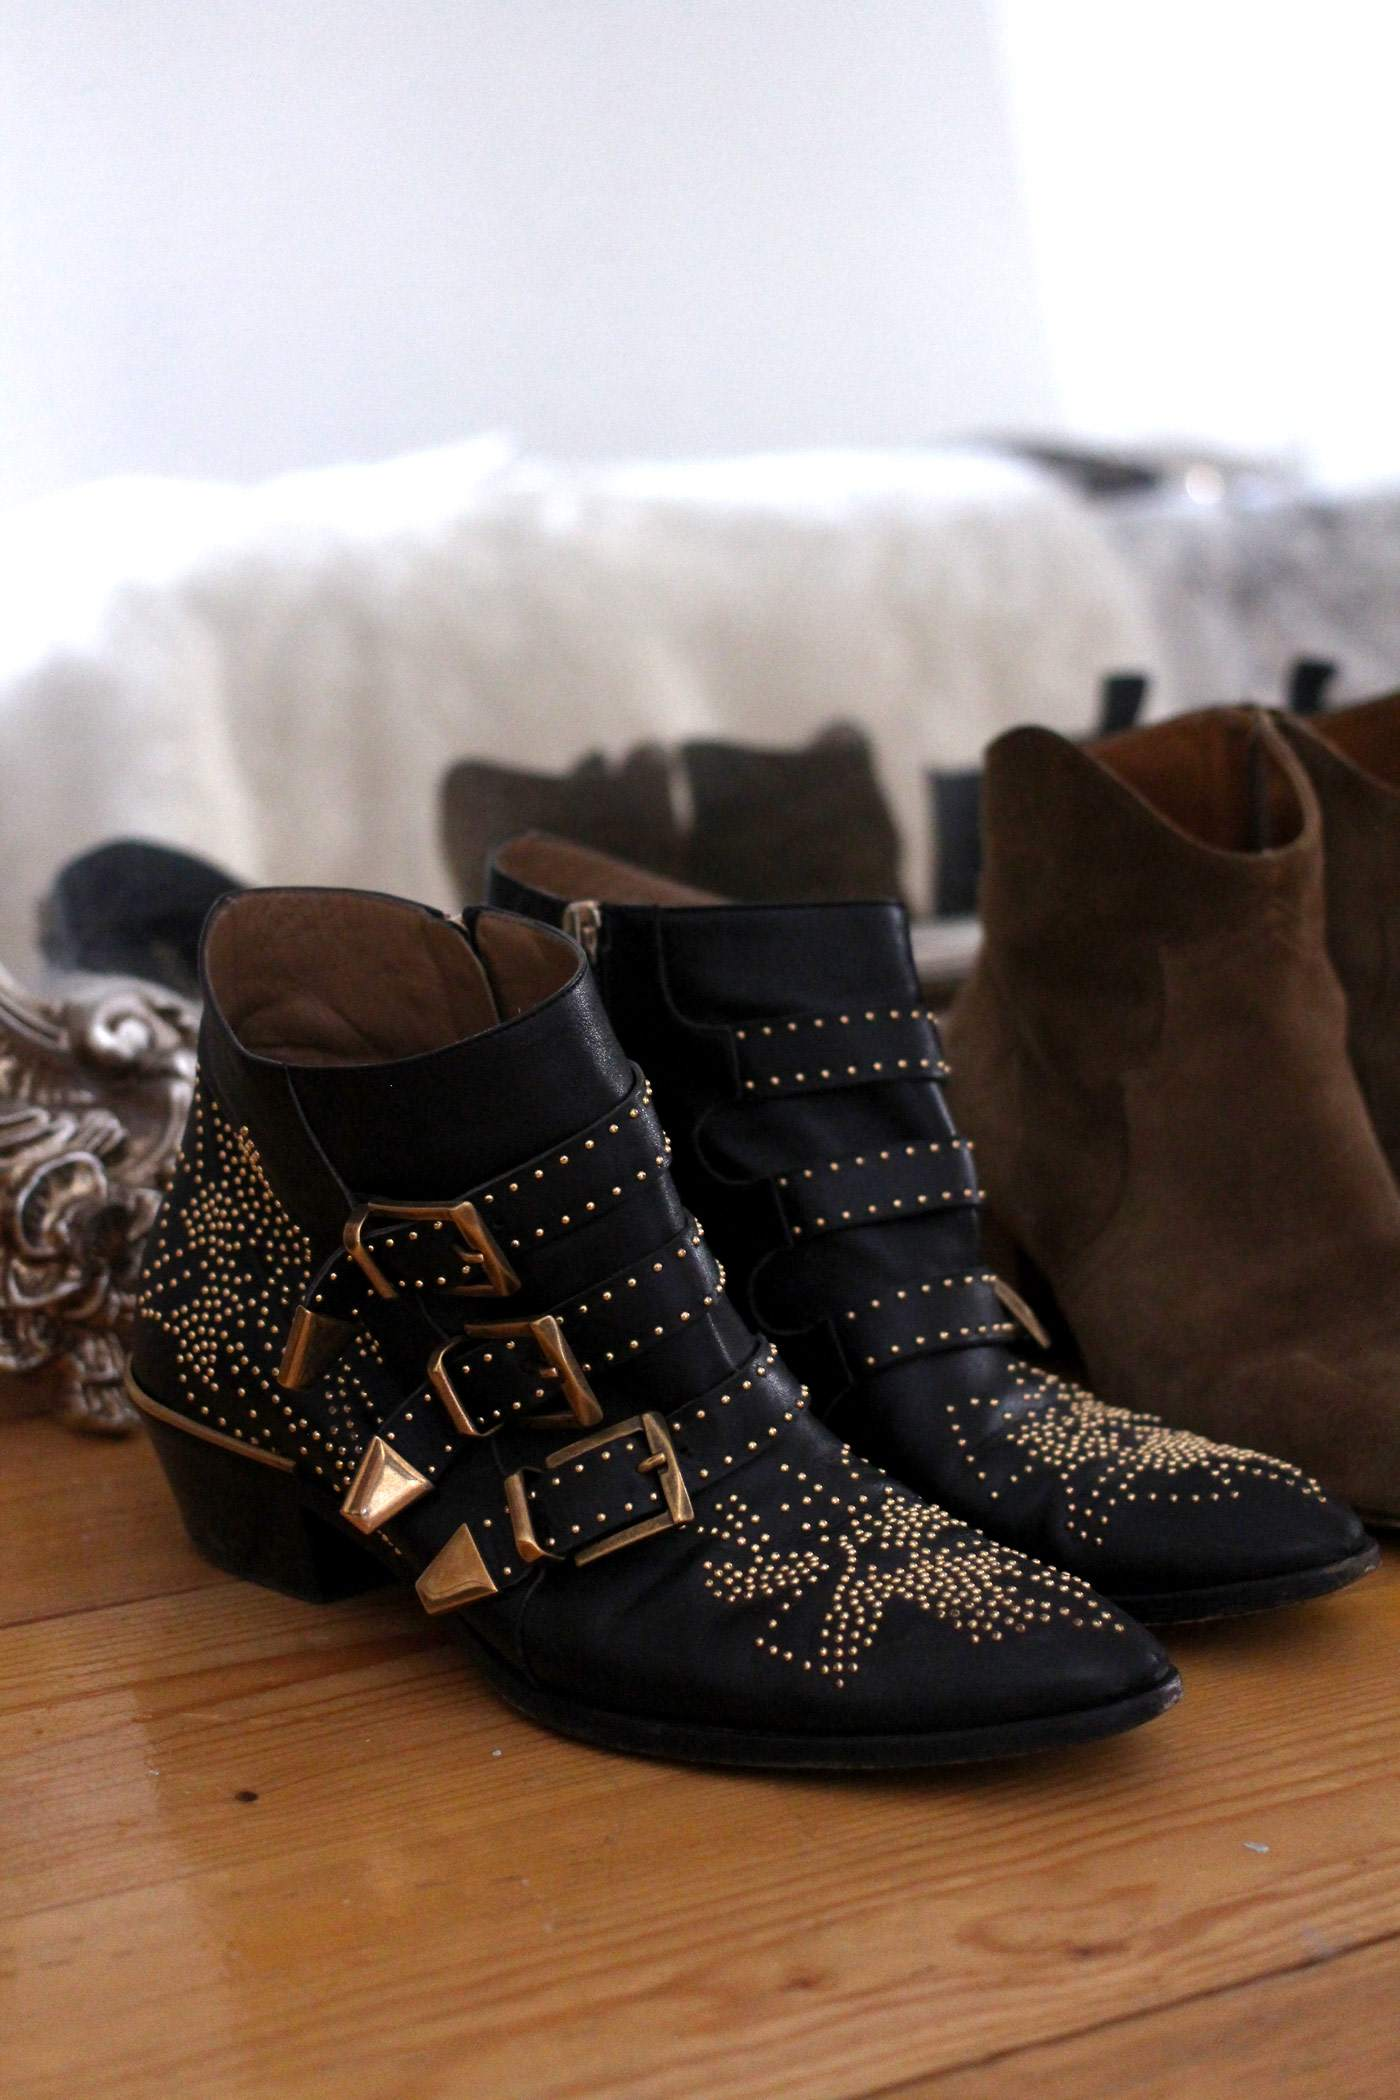 autumn-boots-chloe-susanna-studded-isabel-marant-dicker-acne-jensen-suede